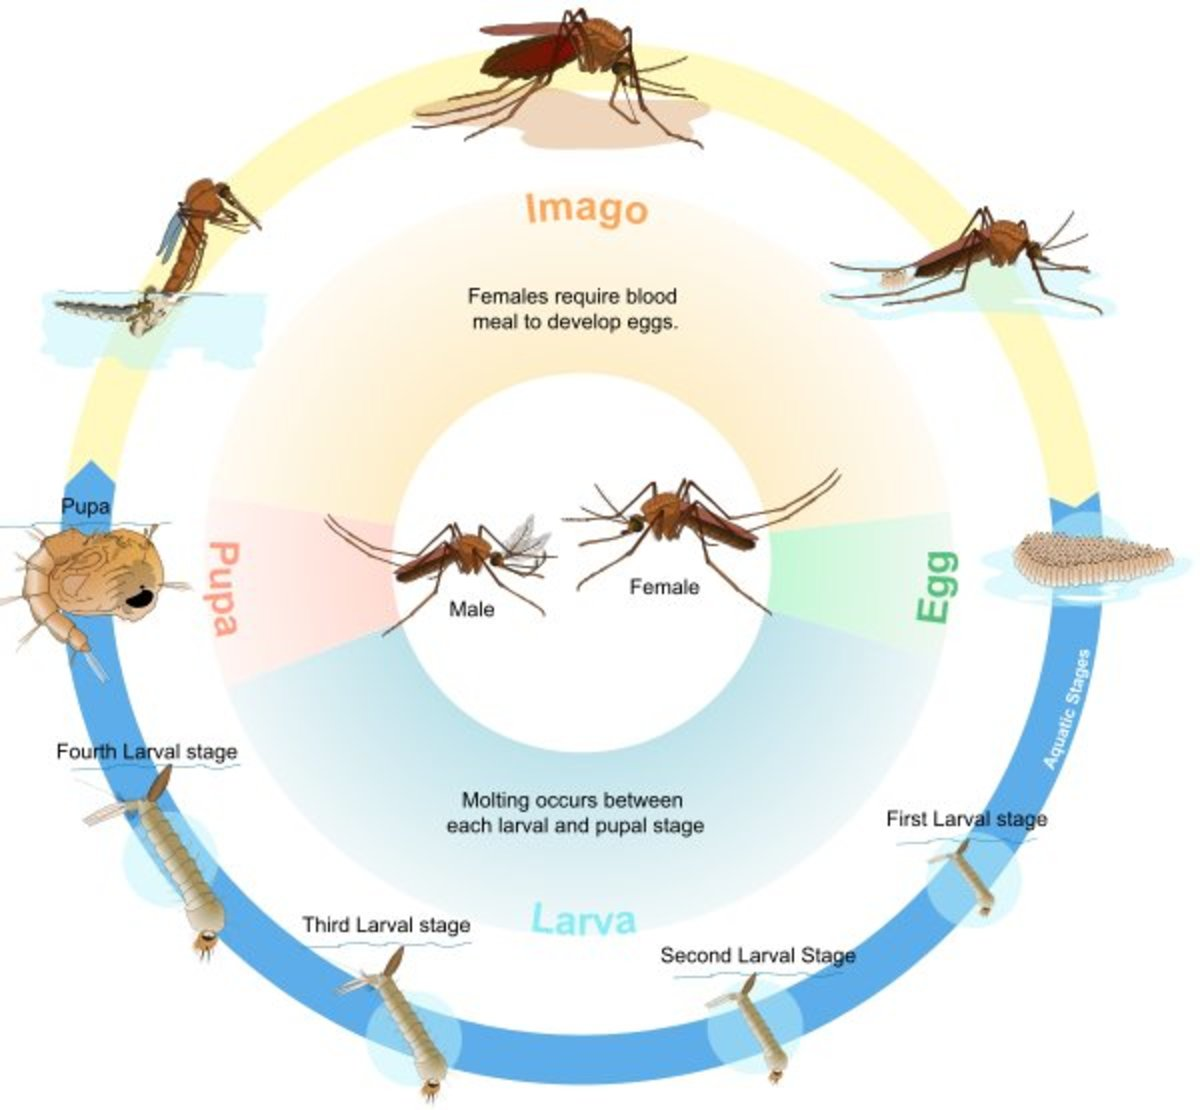 Life cycle of a mosquito.